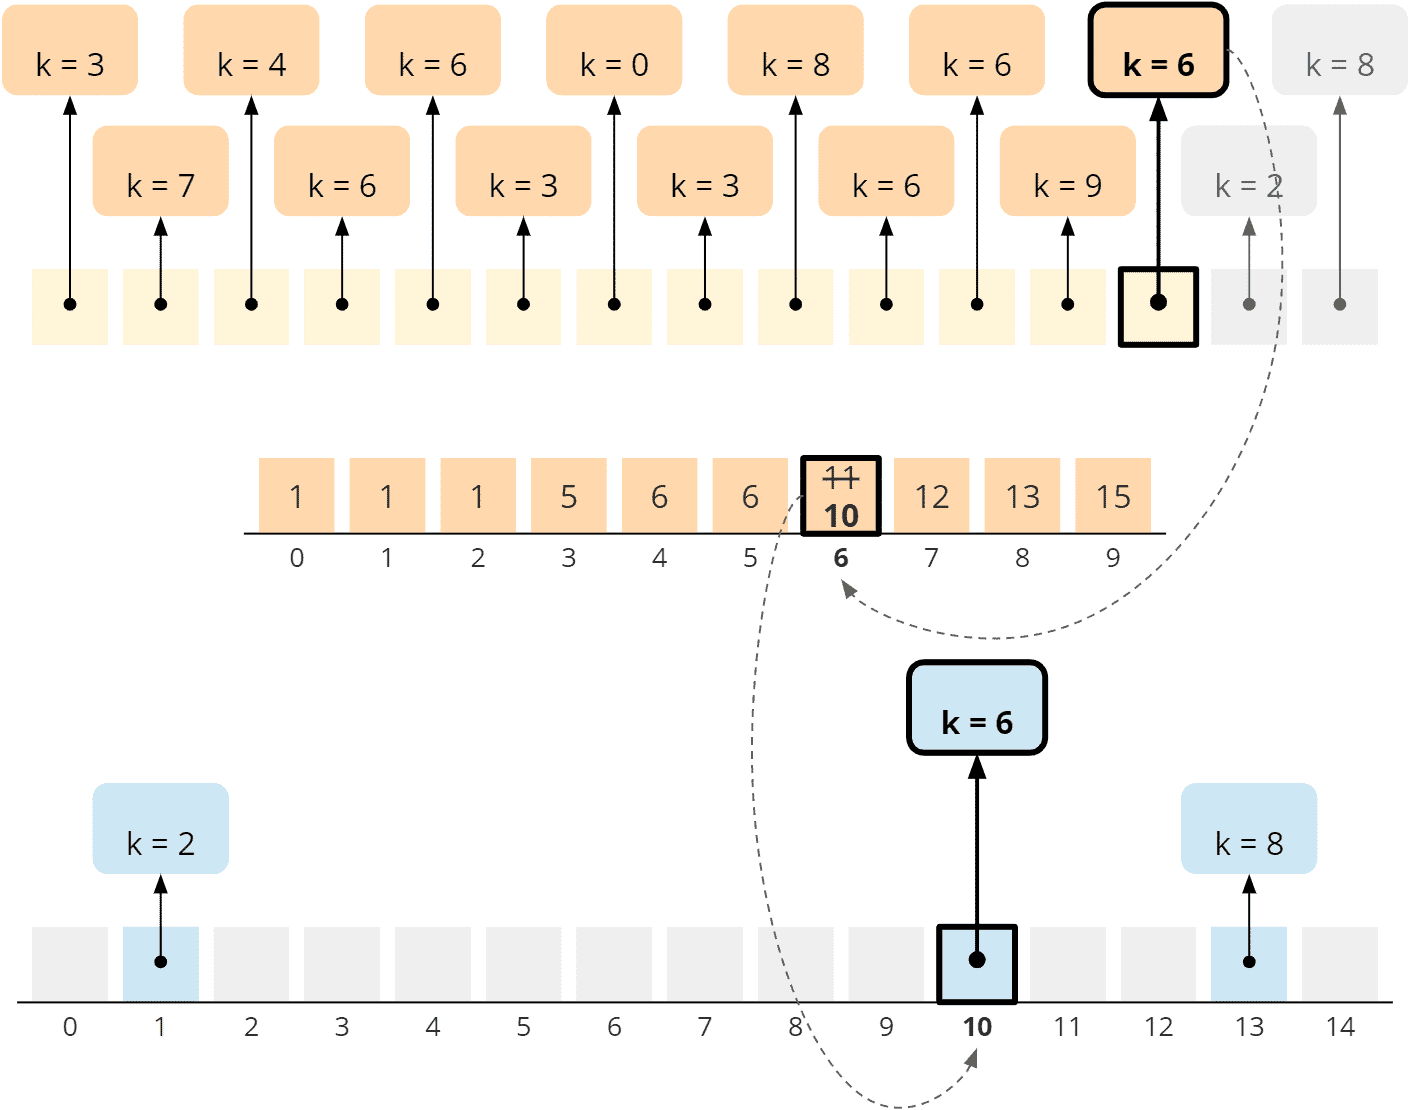 Counting Sort - general algorithm - phase 3 - step 3